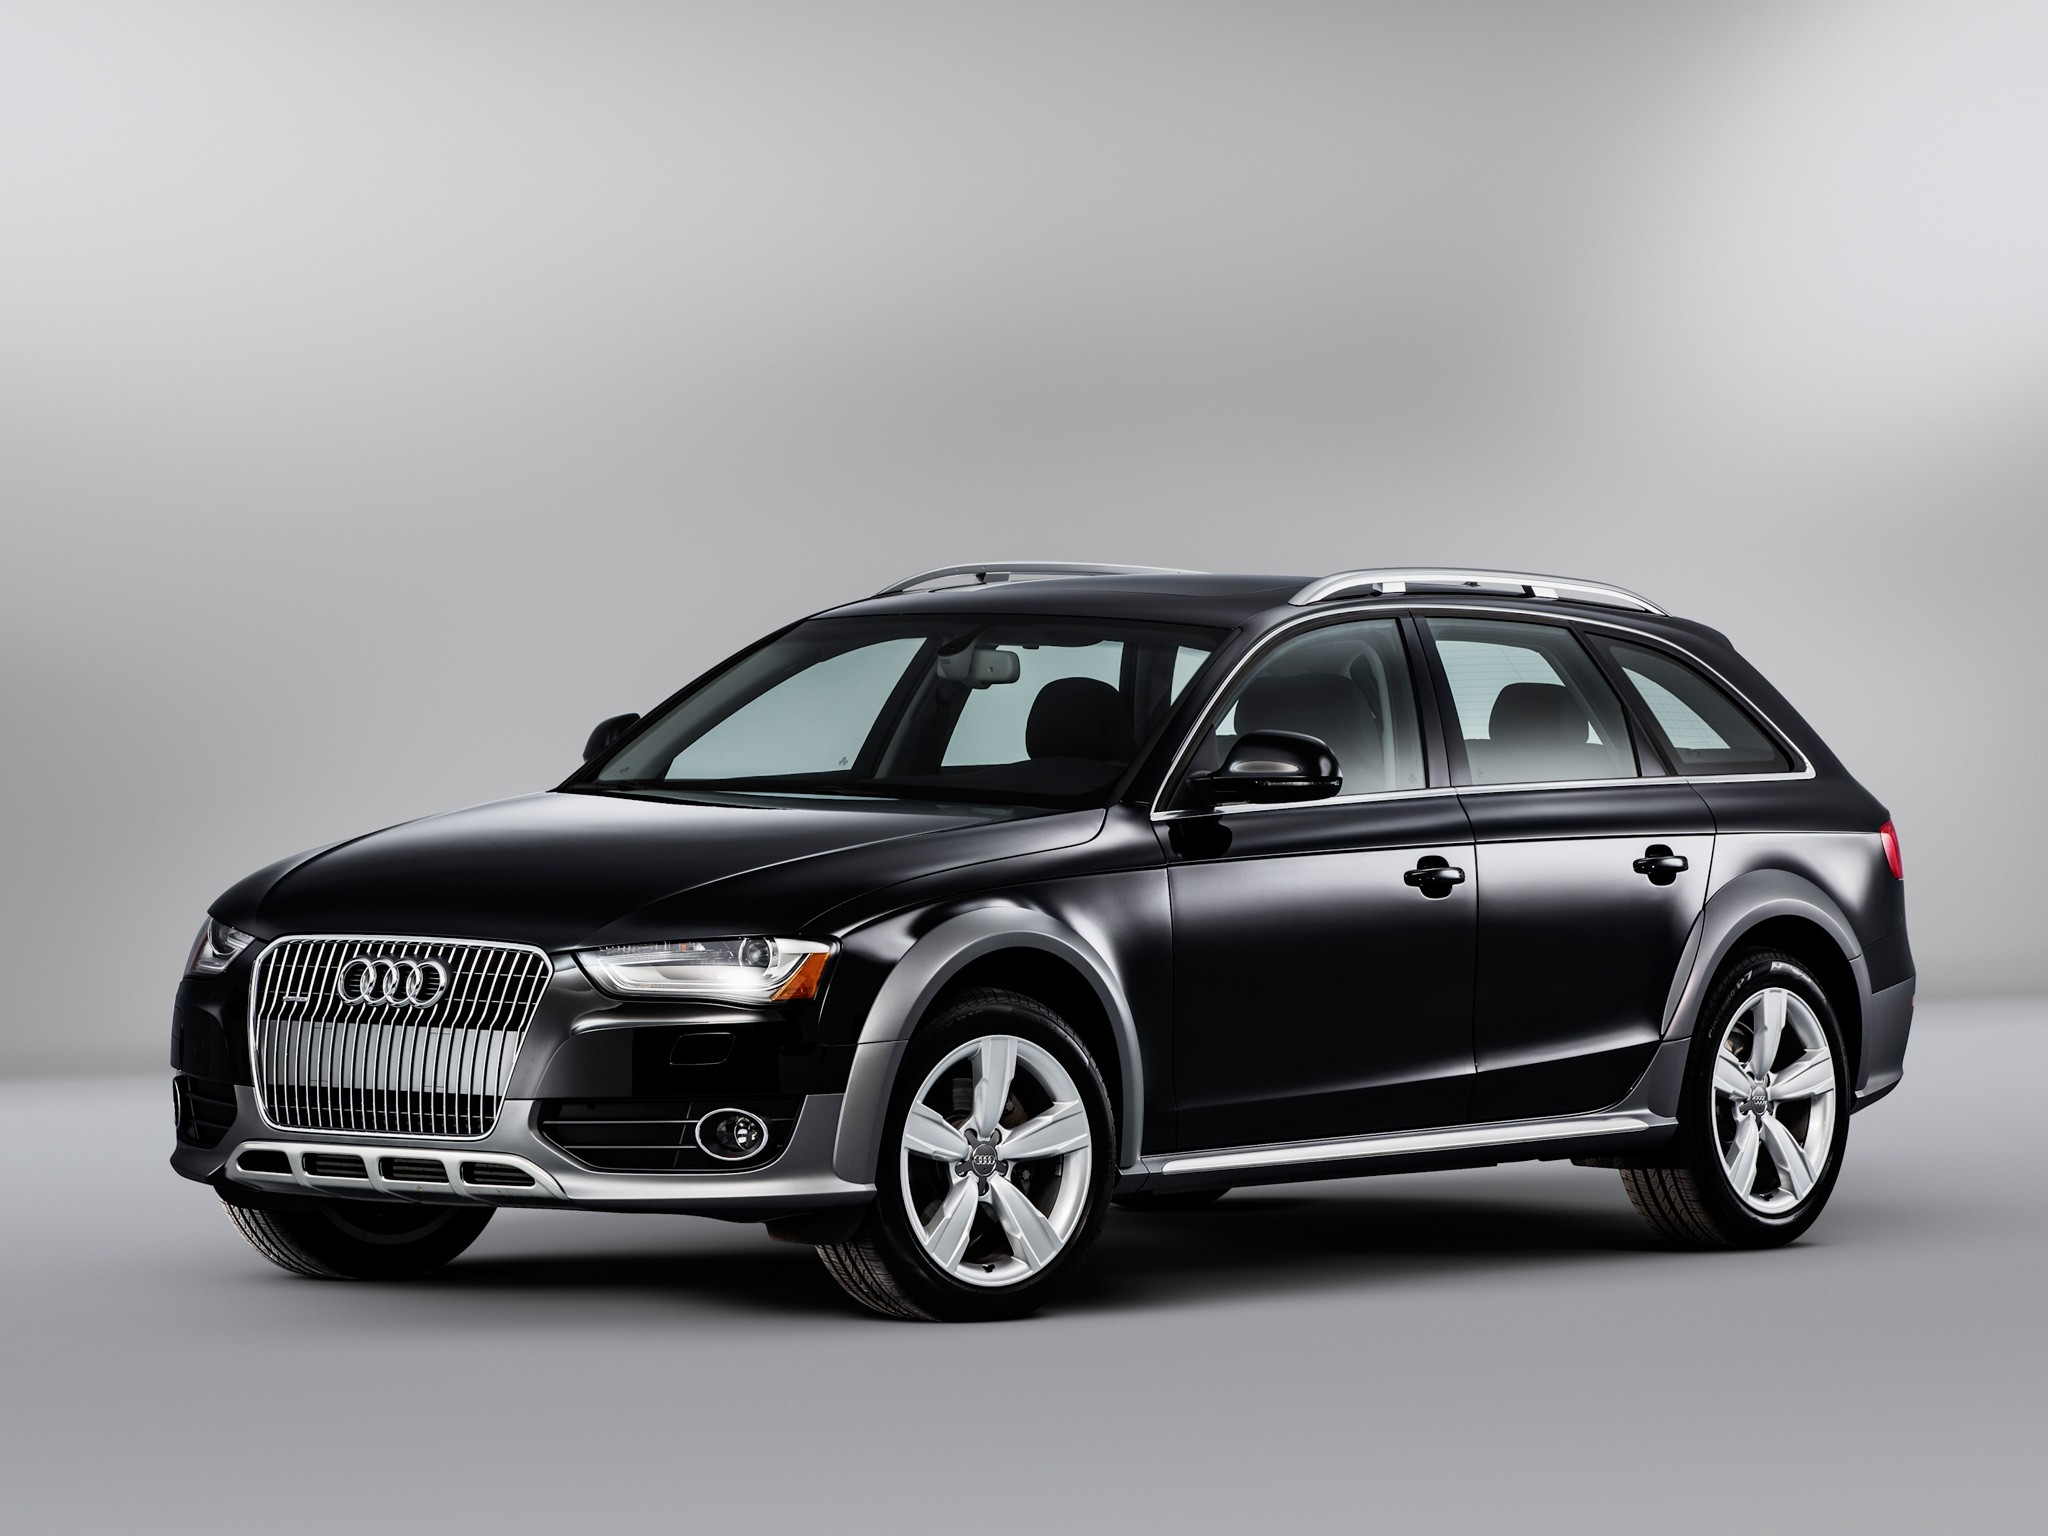 audi a4 allroad specs 2012 2013 2014 2015 2016 2017 2018 autoevolution. Black Bedroom Furniture Sets. Home Design Ideas